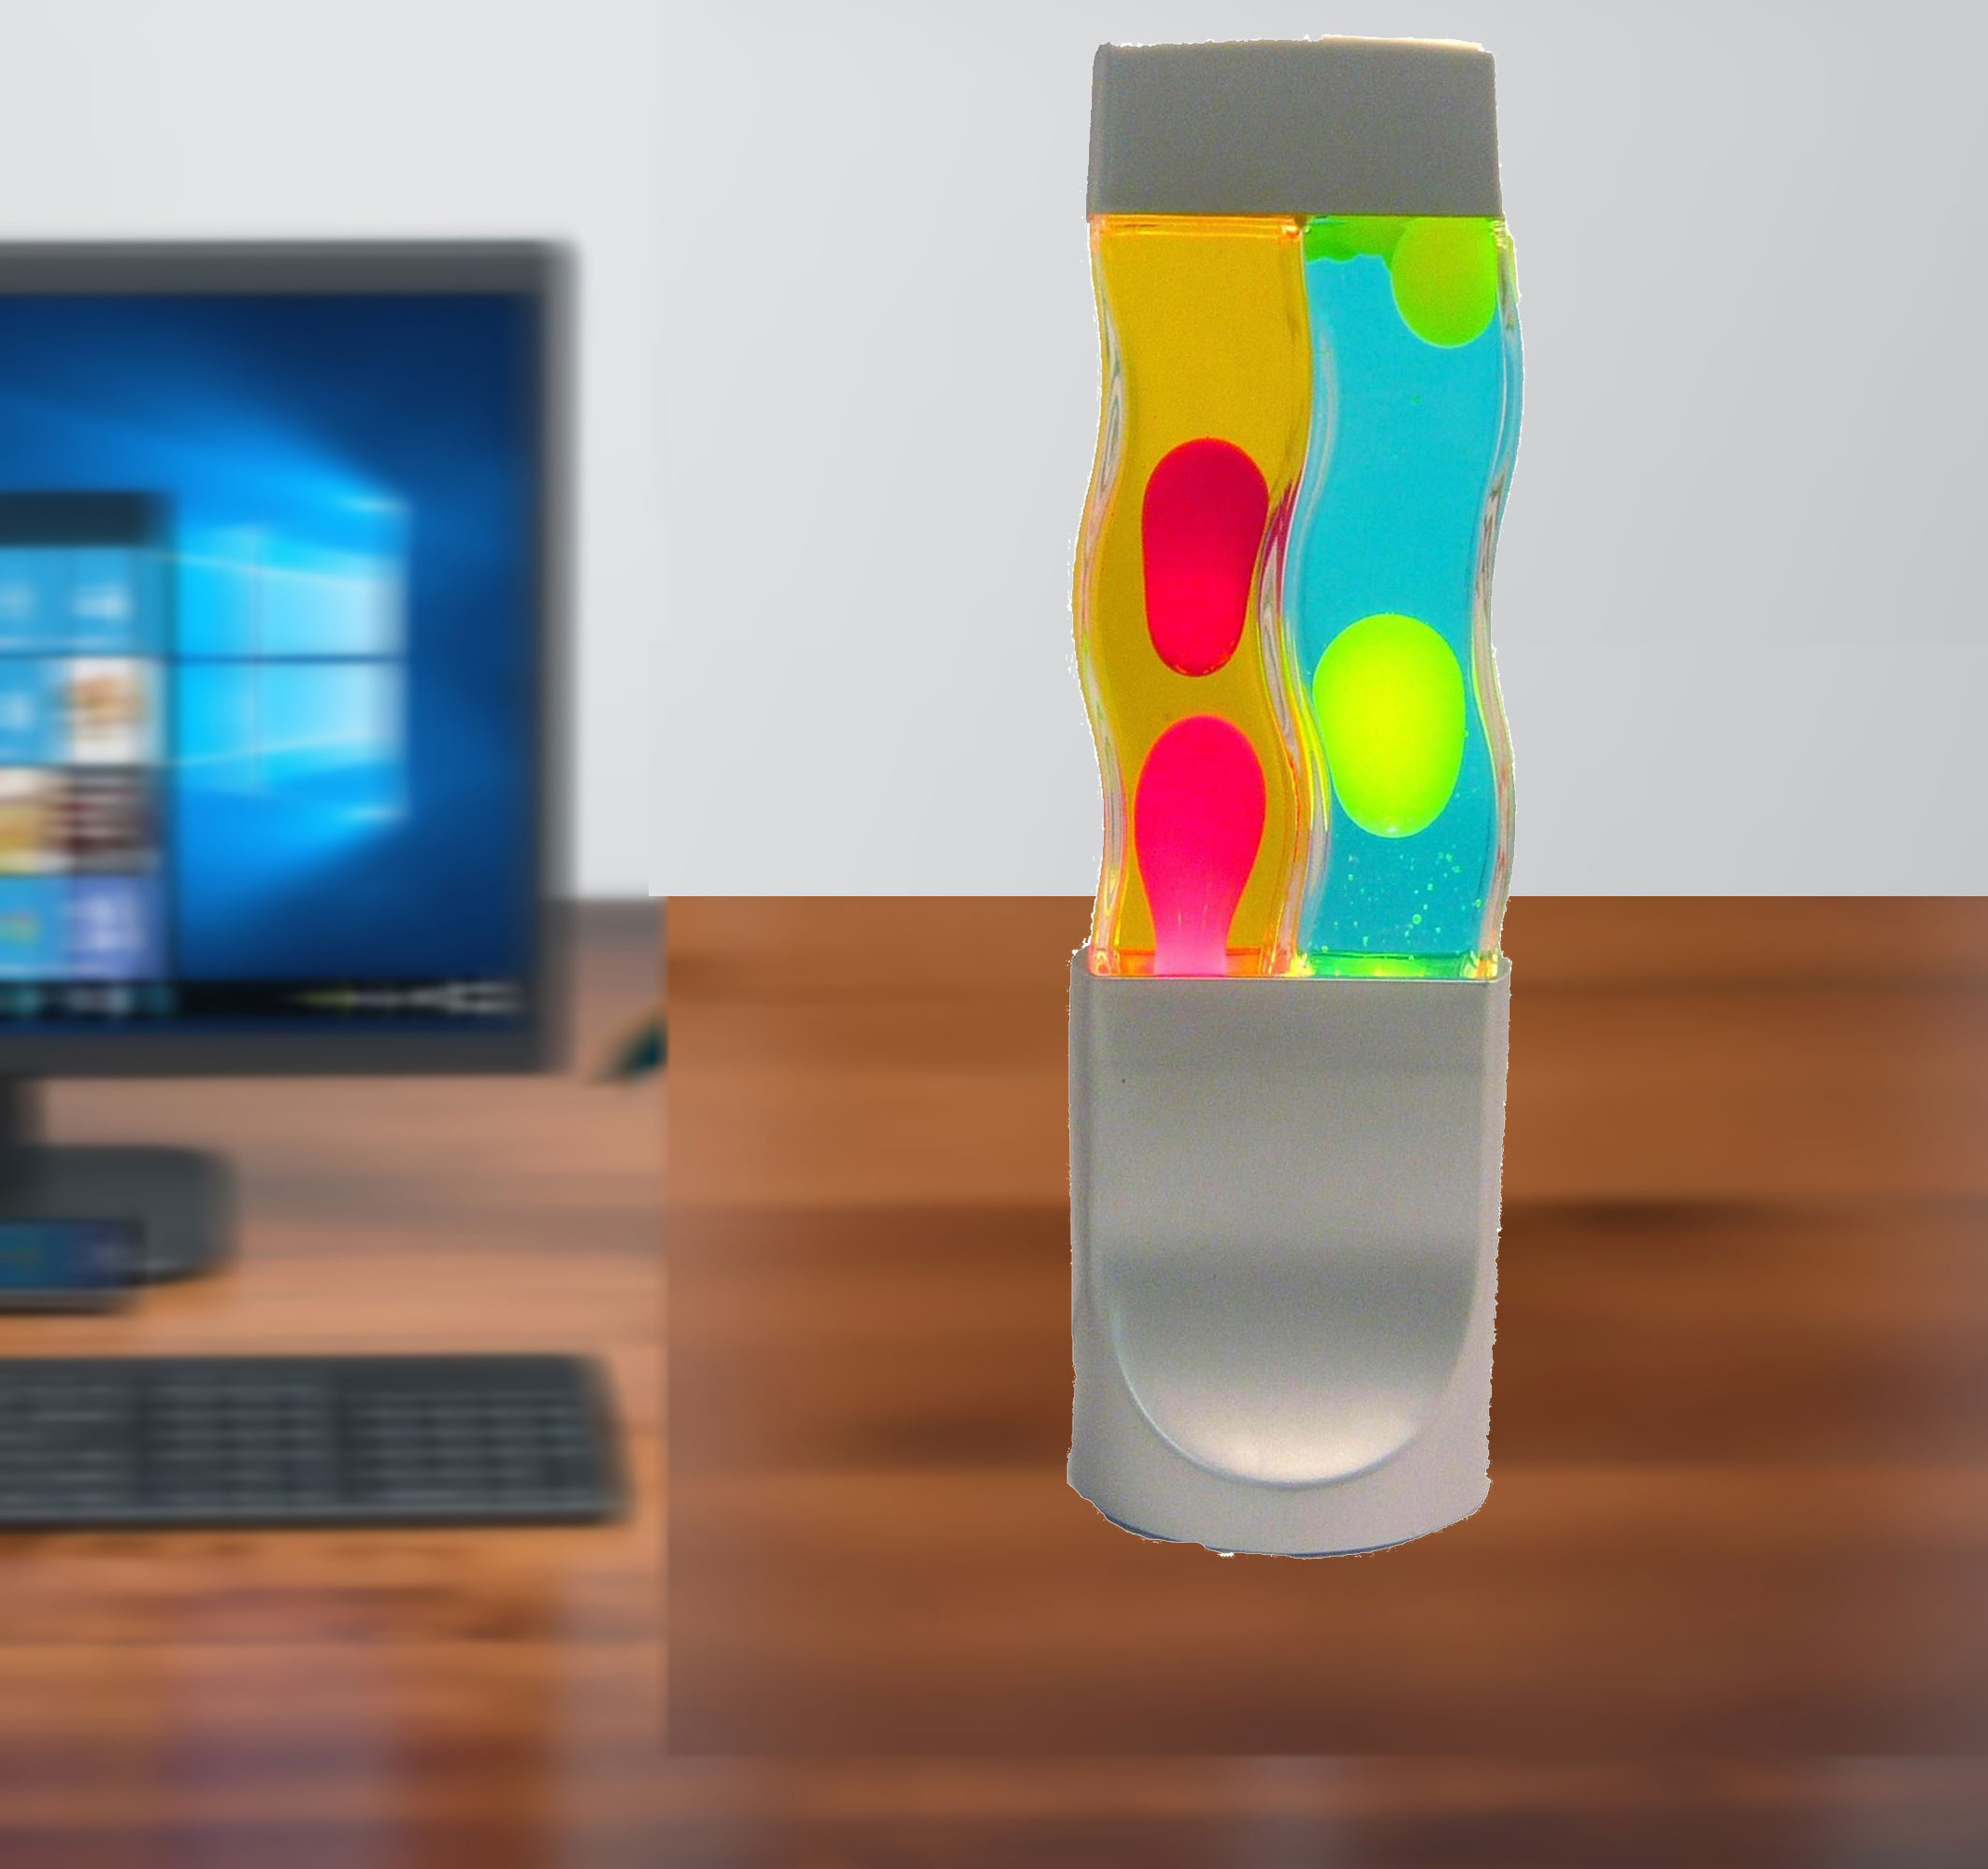 Relaxing and Soothing with this Twin Motion Lamp, Yellow Wax/Blue Liquid and Red Wax/Yellow Liquid, Silver Base/Cap. Twice the motion Twice the Fun. Center piece. Product Size: 5 x 16.14 x 5